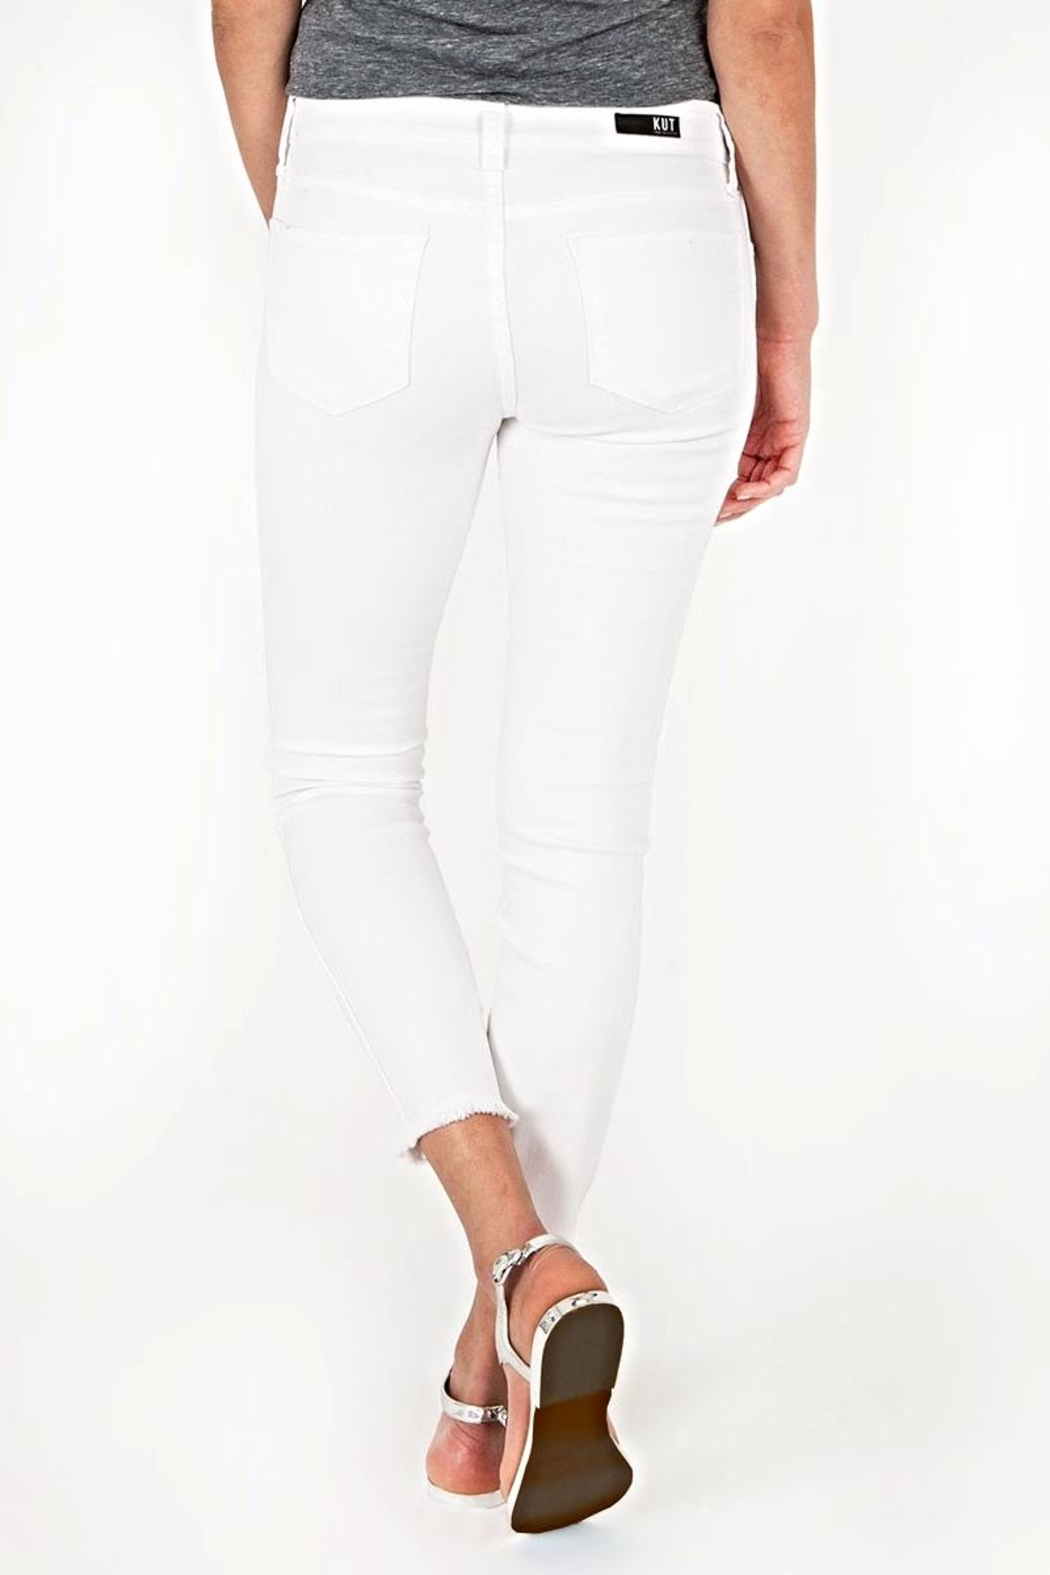 Kut from the Kloth White Ankle Skinny - Side Cropped Image